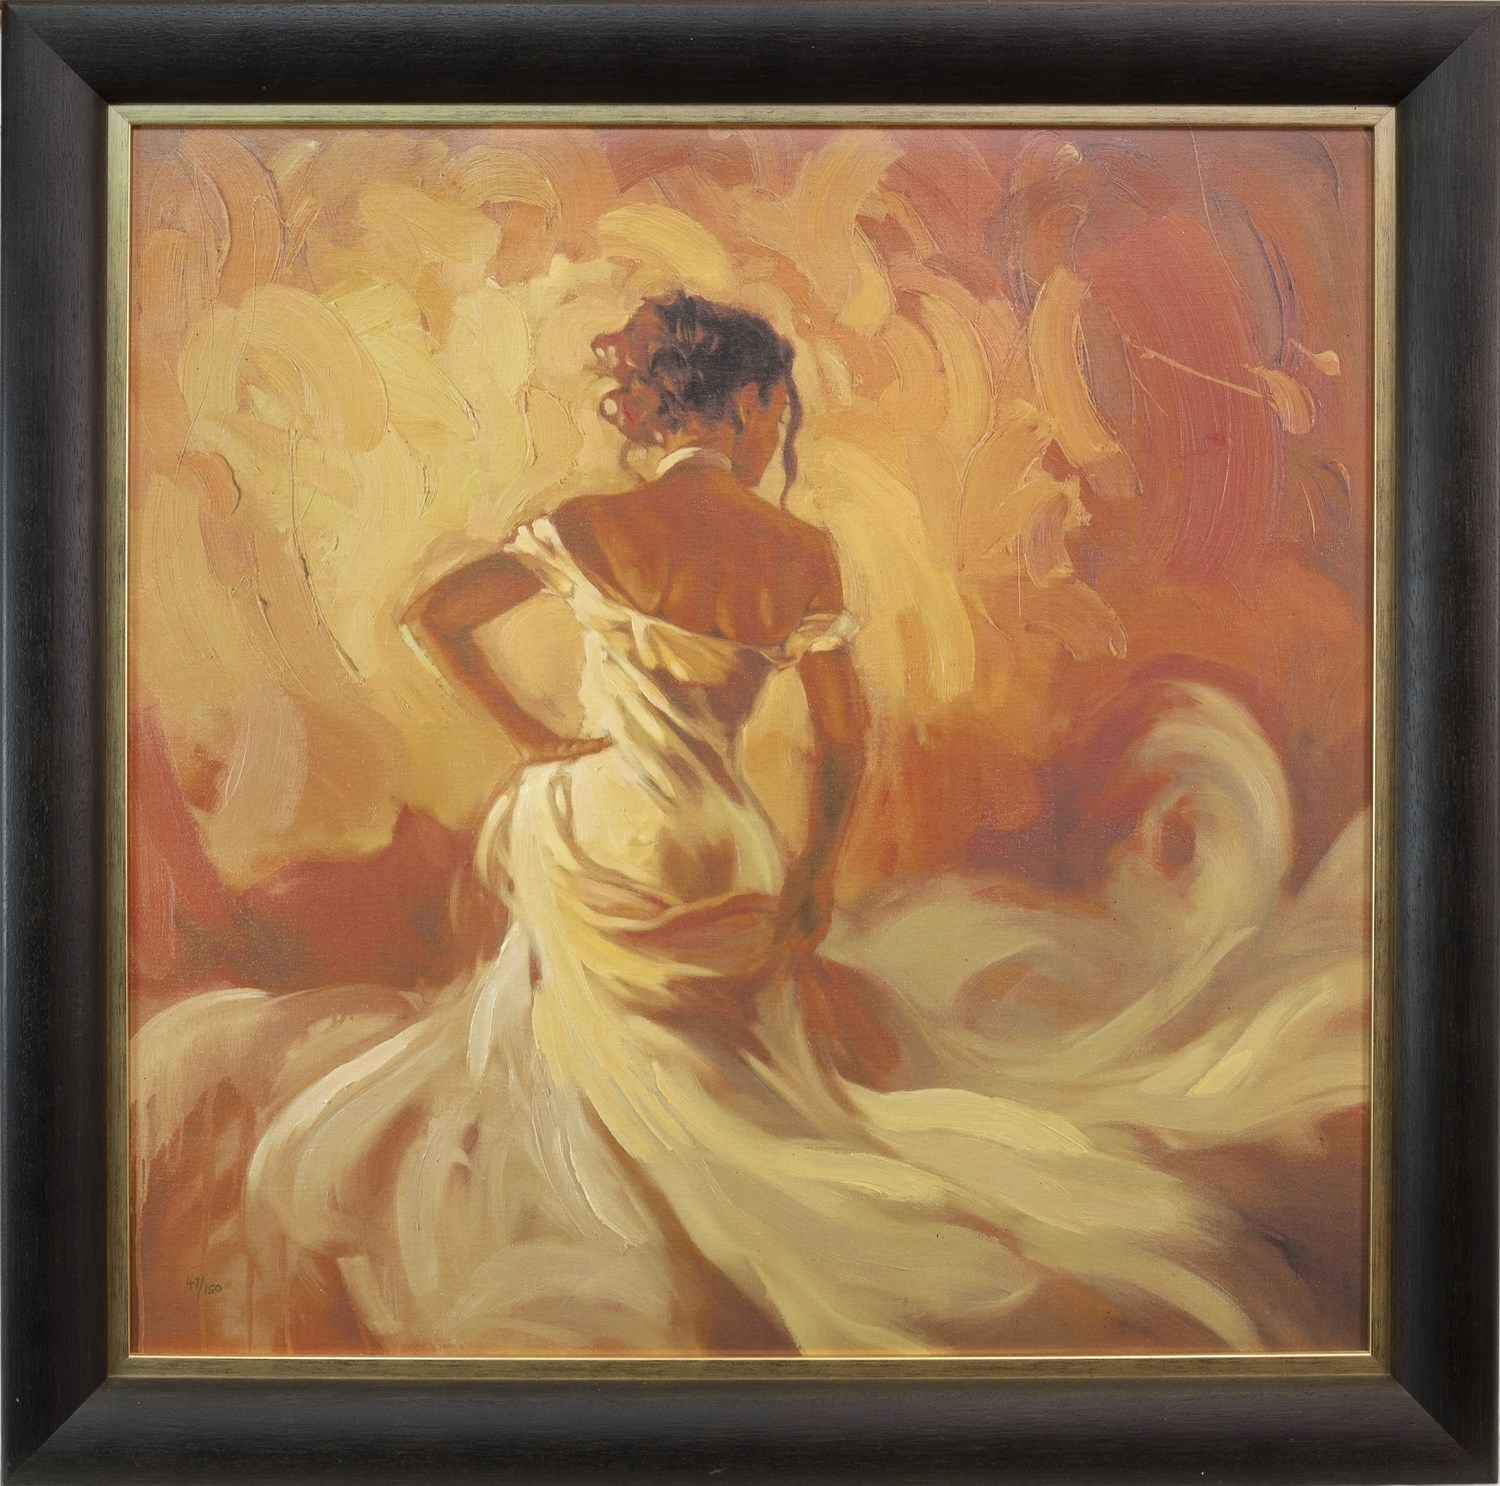 Lot 32 - PURE ELEGANCE, A SIGNED LIMITED EDITION GICLEE PRINT ON CANVAS BY MARK SPAIN